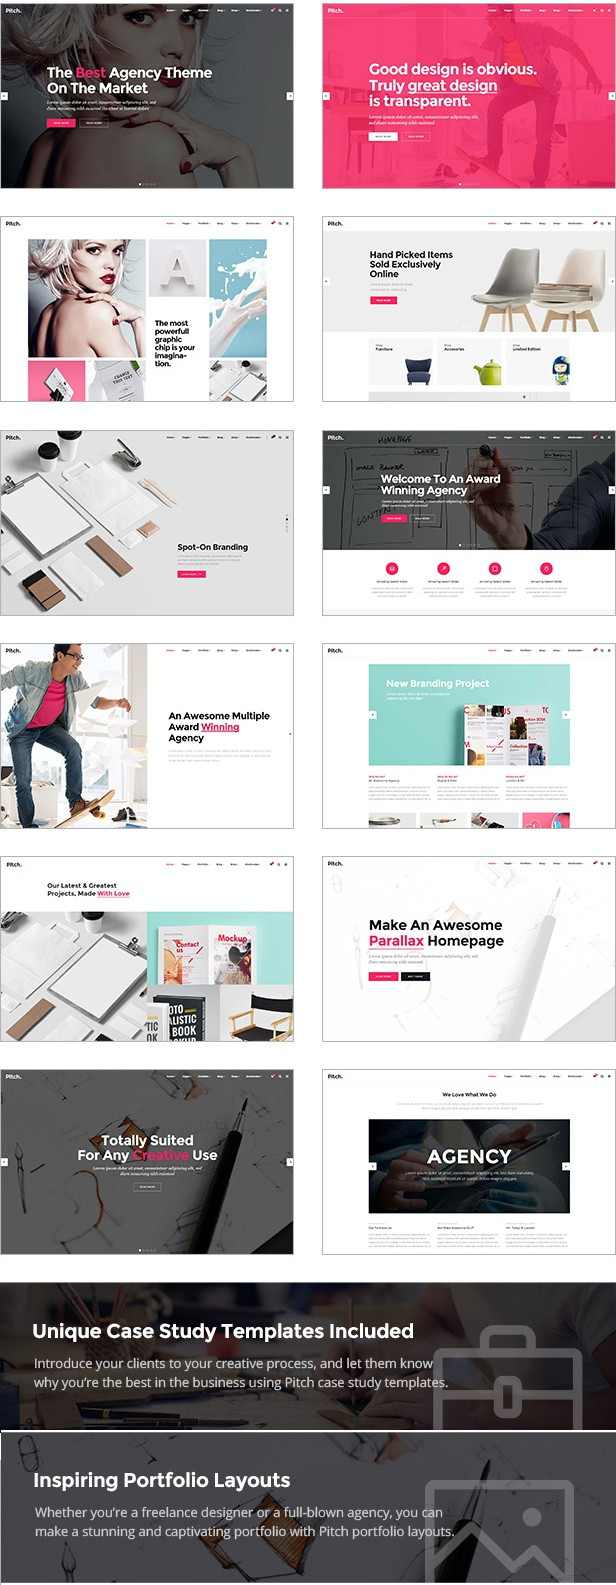 WordPress theme for Freelancers and Agencies